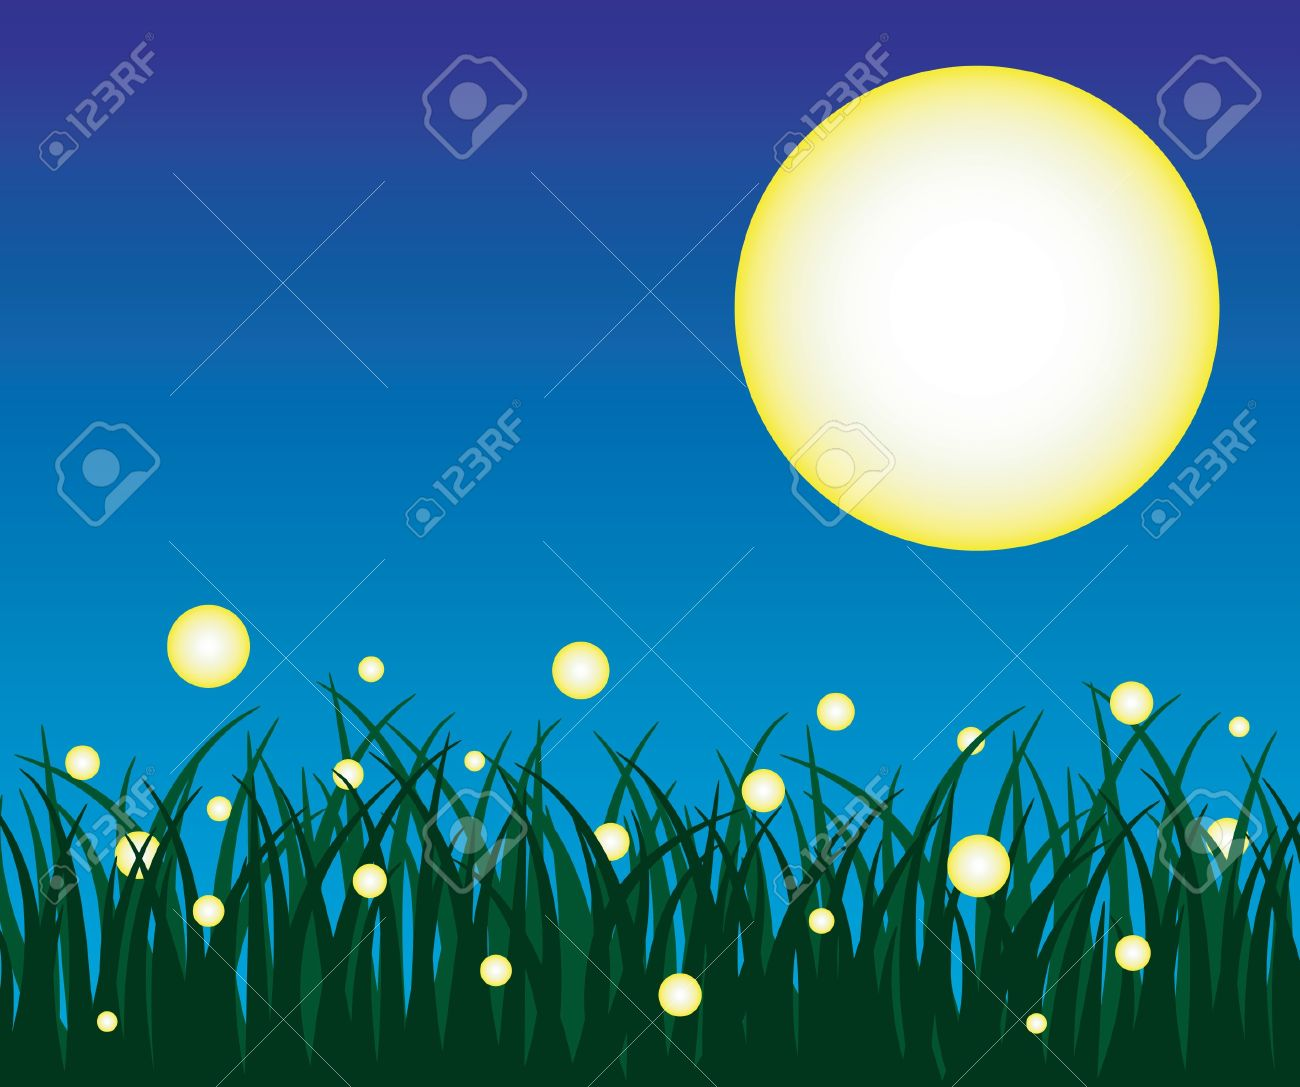 Firefly And Grass With Background Royalty Free Cliparts, Vectors.